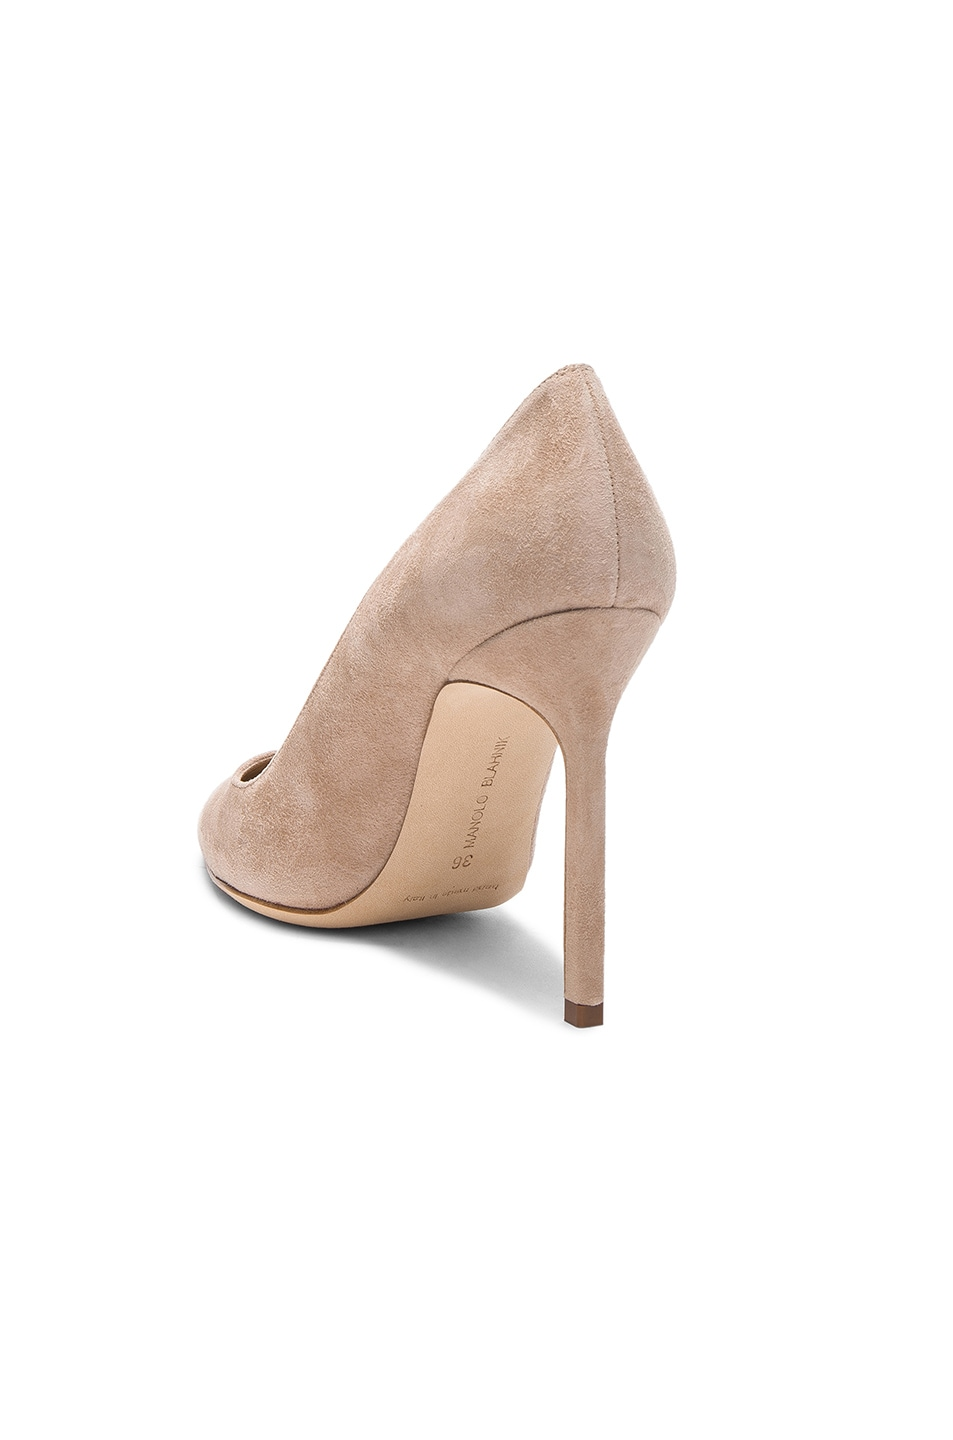 Image 3 of Manolo Blahnik BB 105 Suede Pumps in Nude Suede